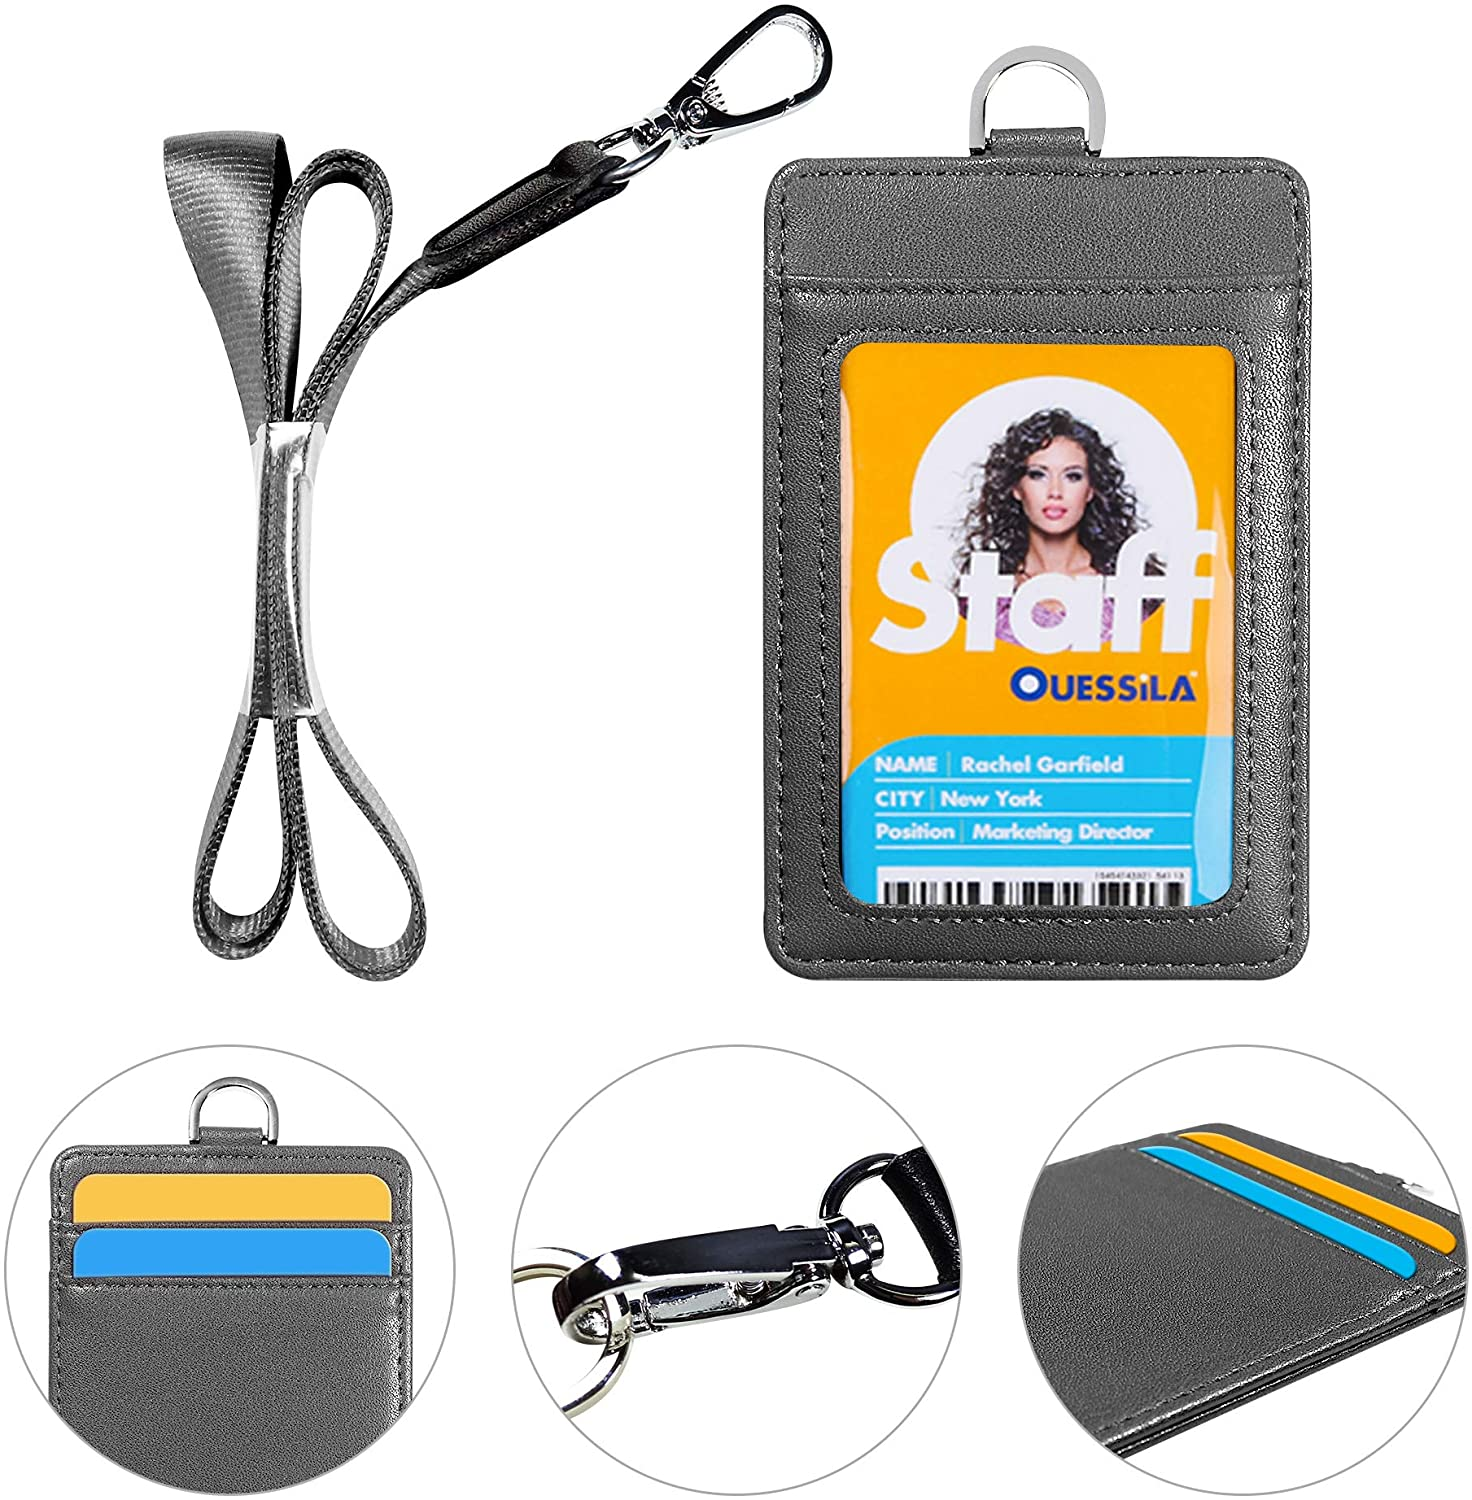 Badge Holder with Lanyard, 2-Sided Durable Leather ID Badge Card Holder with 1 Clear ID Window and 2 Credit Card Slot and Polyester Detachable Neck Lanyard Strap - Gray (Vertical)